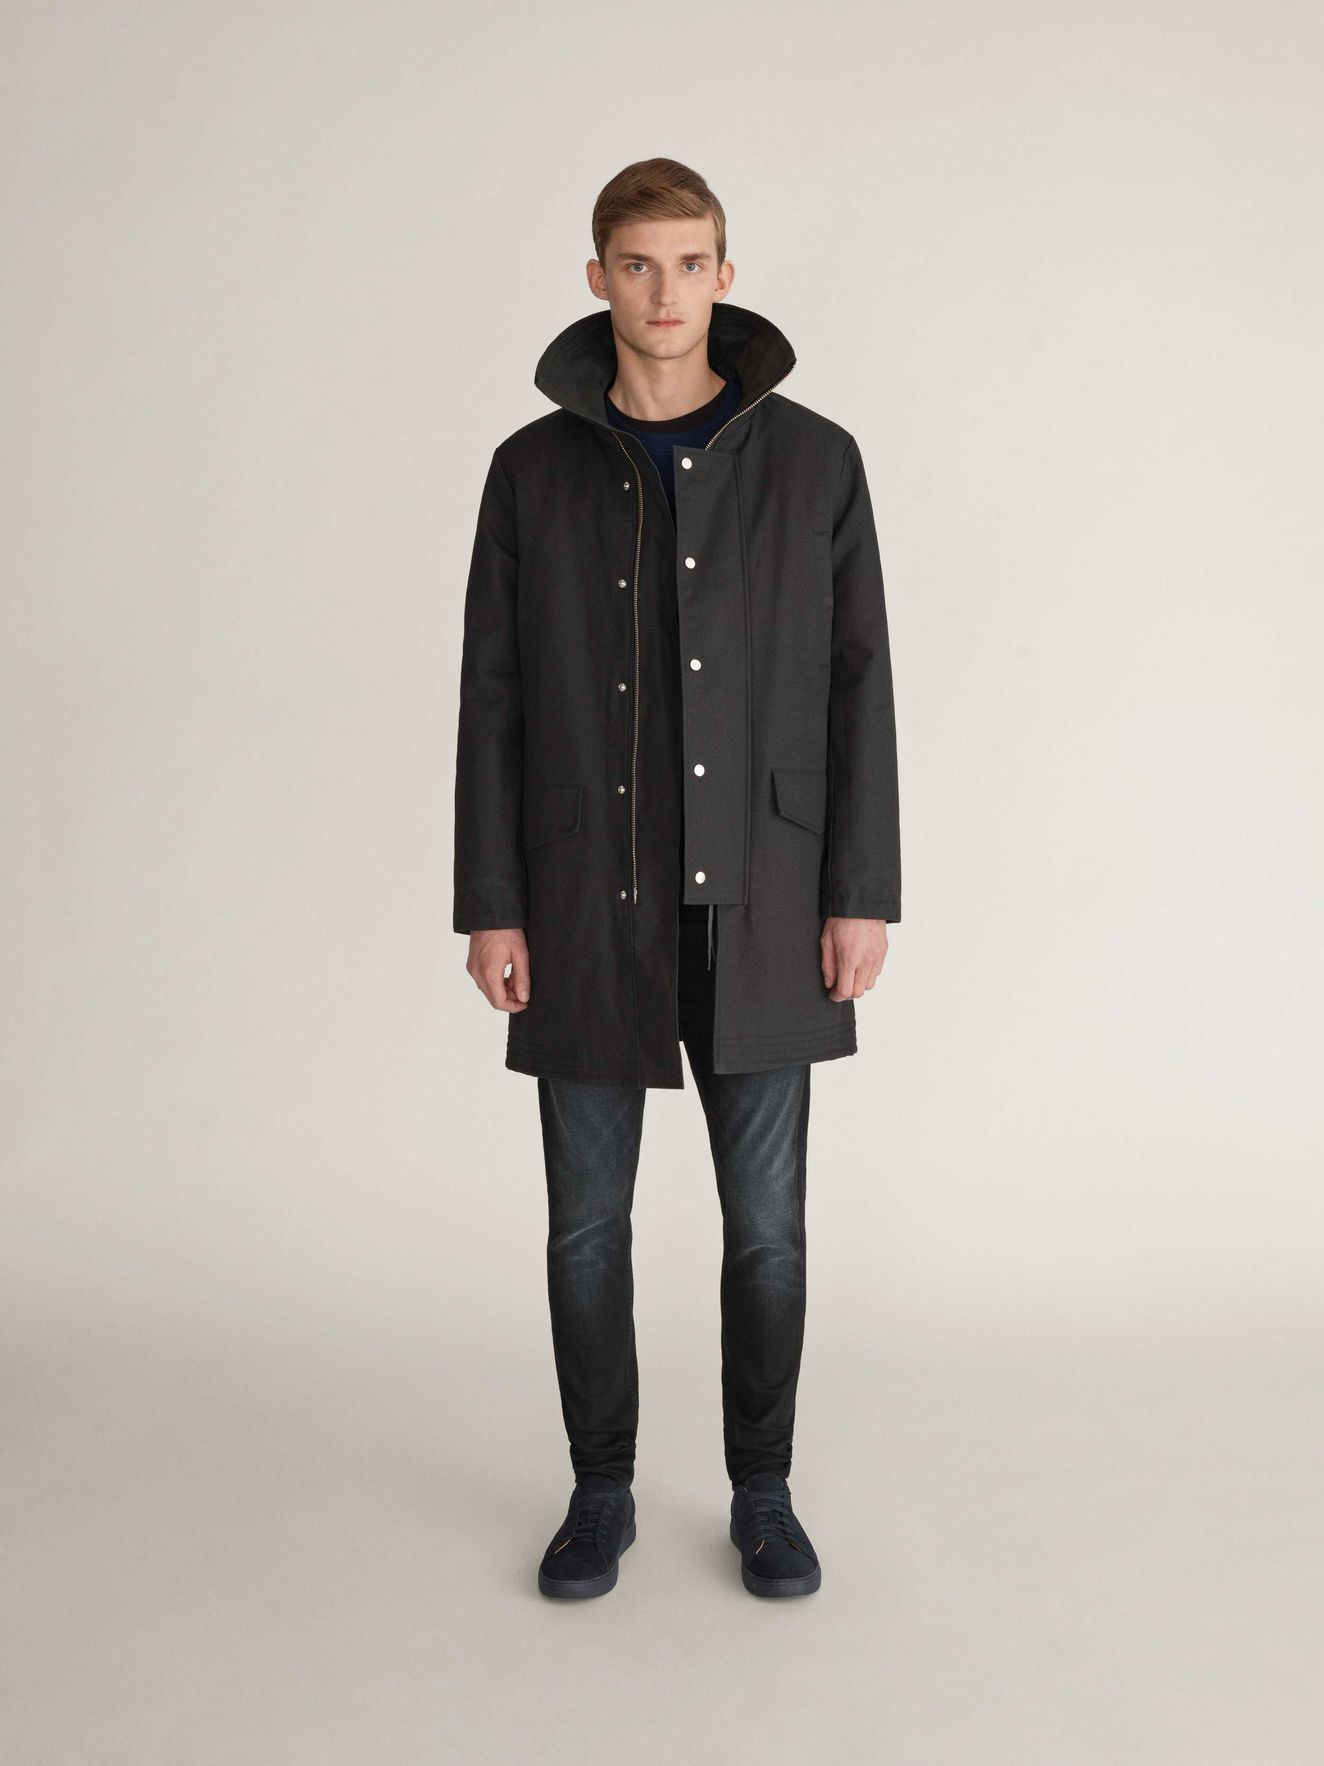 475c8f3a0fa Contract Parka in Black from Tiger of Sweden | A Gentlemen's Choice ...